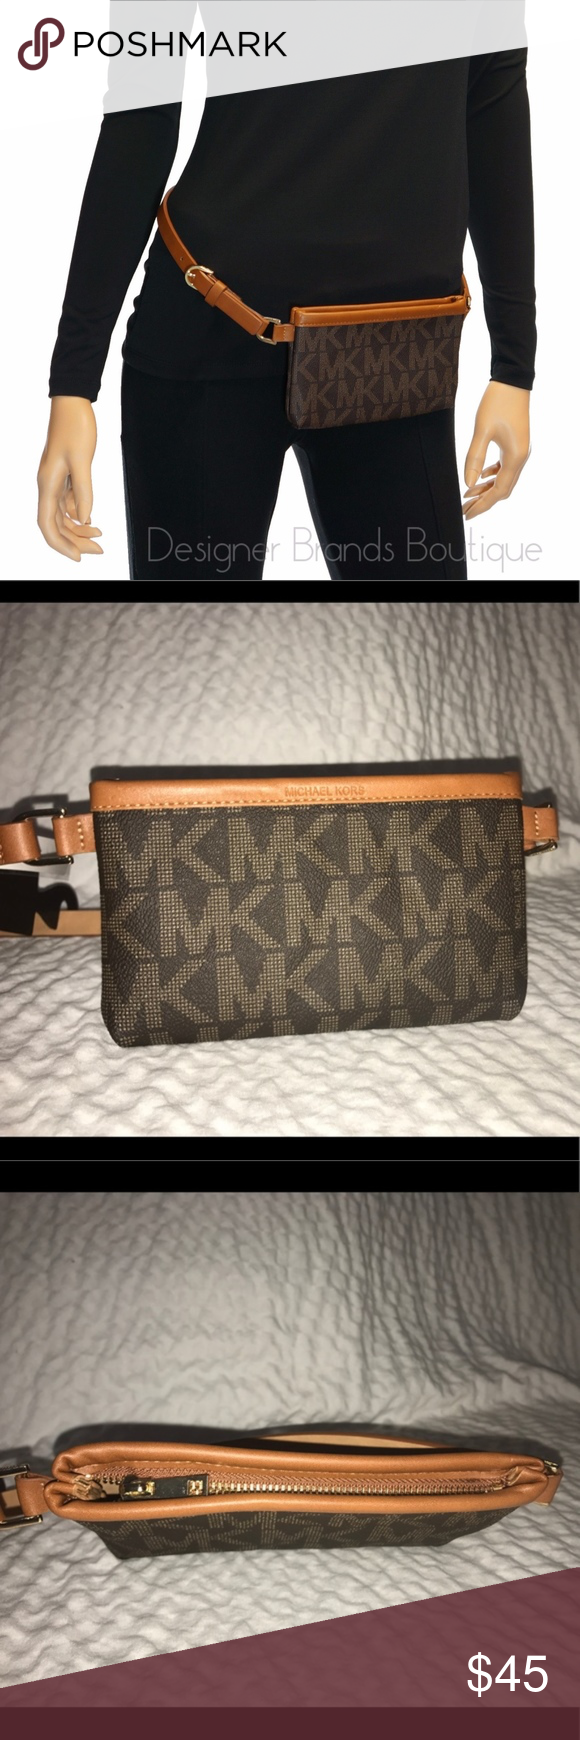 721e1d373f1a Michael Kors MK Belt with wallet/Fanny Pack Brand New With Tags Originally  $68 Brown Signature MK logo Approximate Belt width: 0.25 .